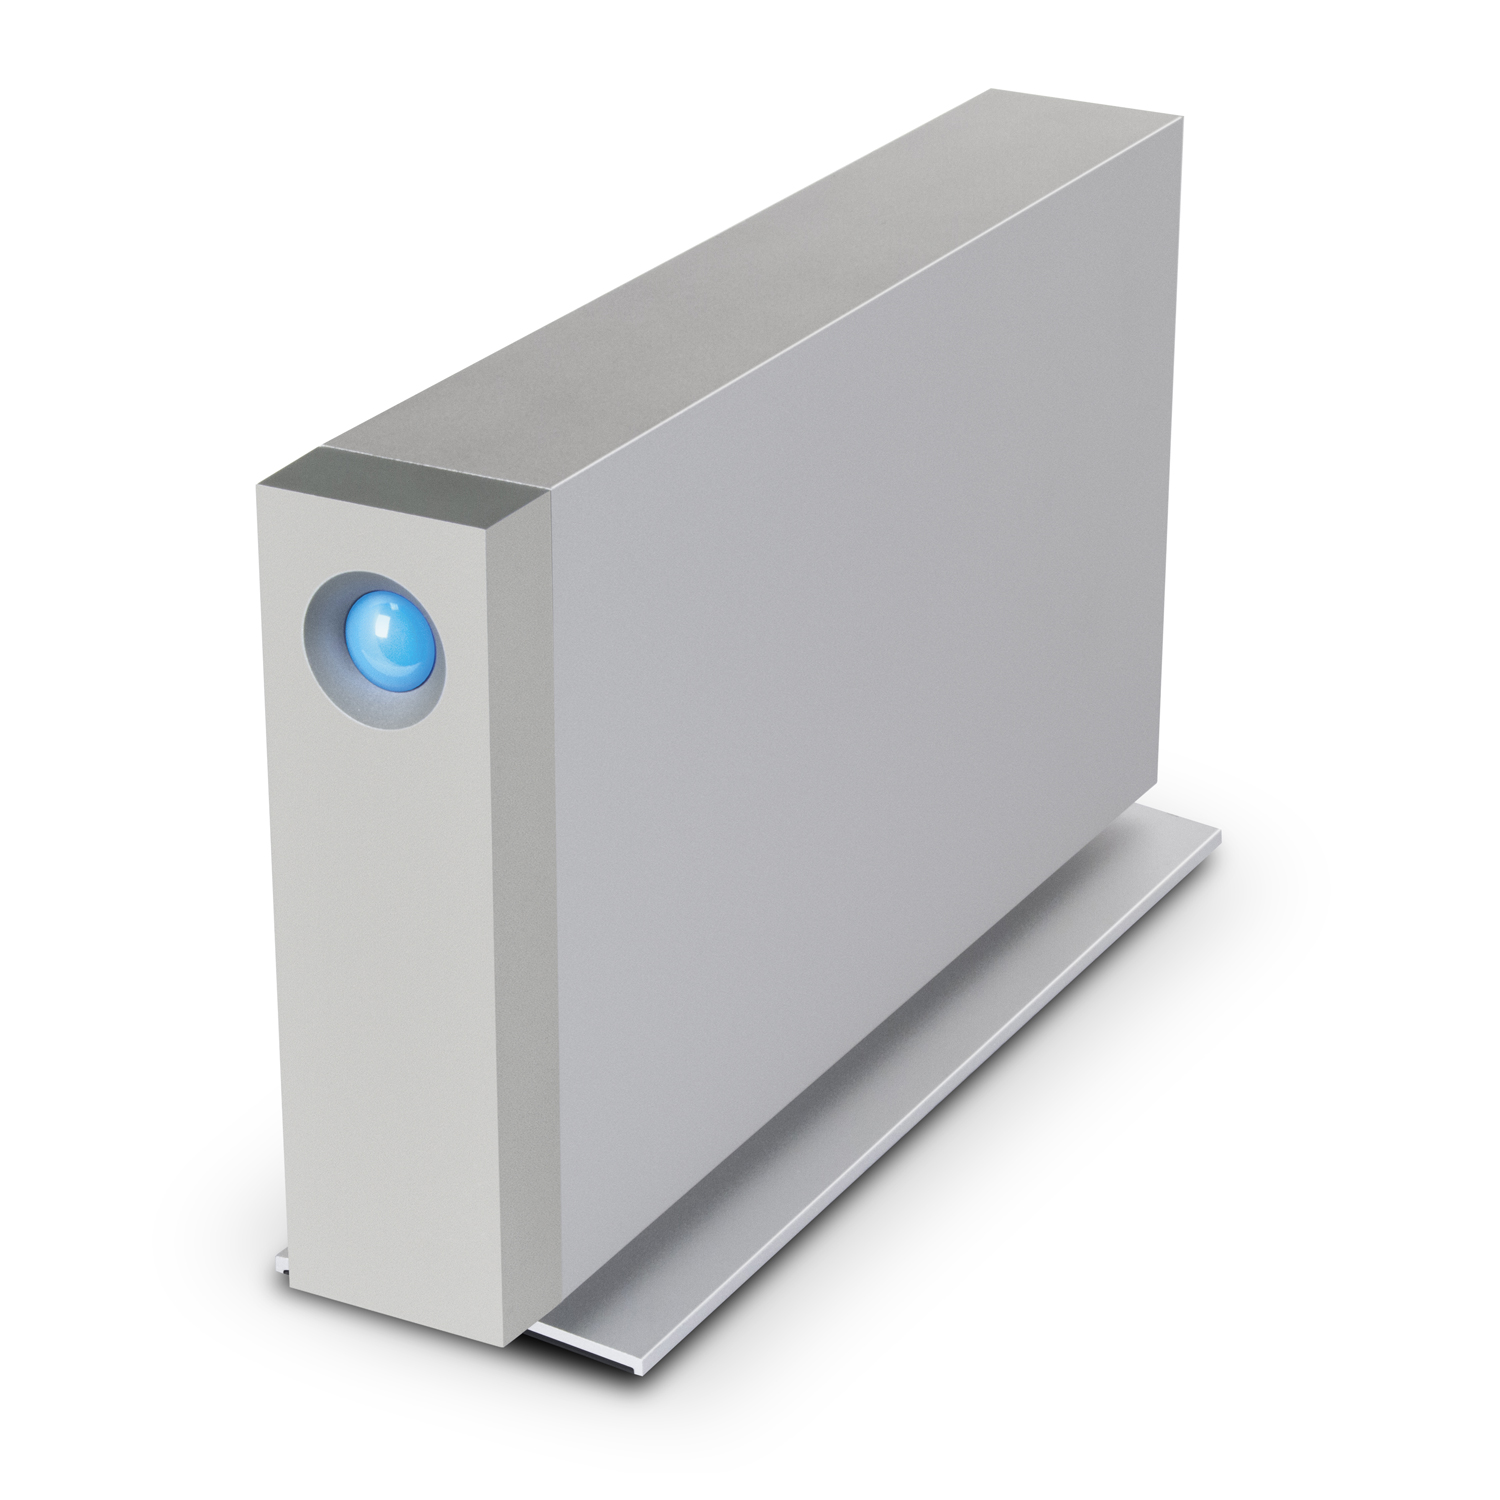 lacie d2 thunderbolt 2 et usb 3 0 8 to disque dur externe lacie sur. Black Bedroom Furniture Sets. Home Design Ideas